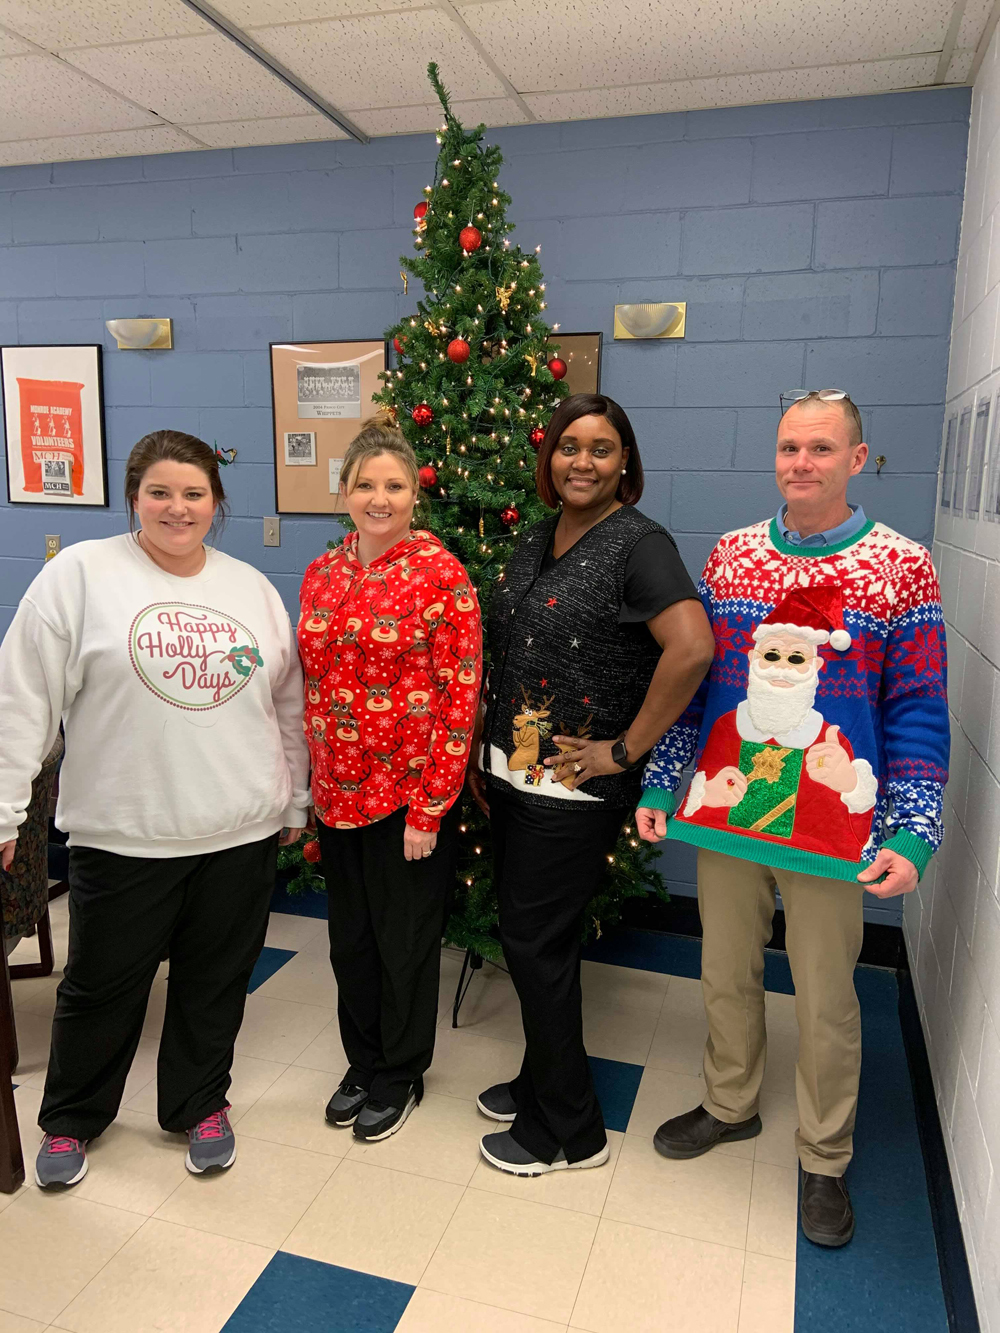 Merry Christmas from #EncoreRehab - Monroeville!